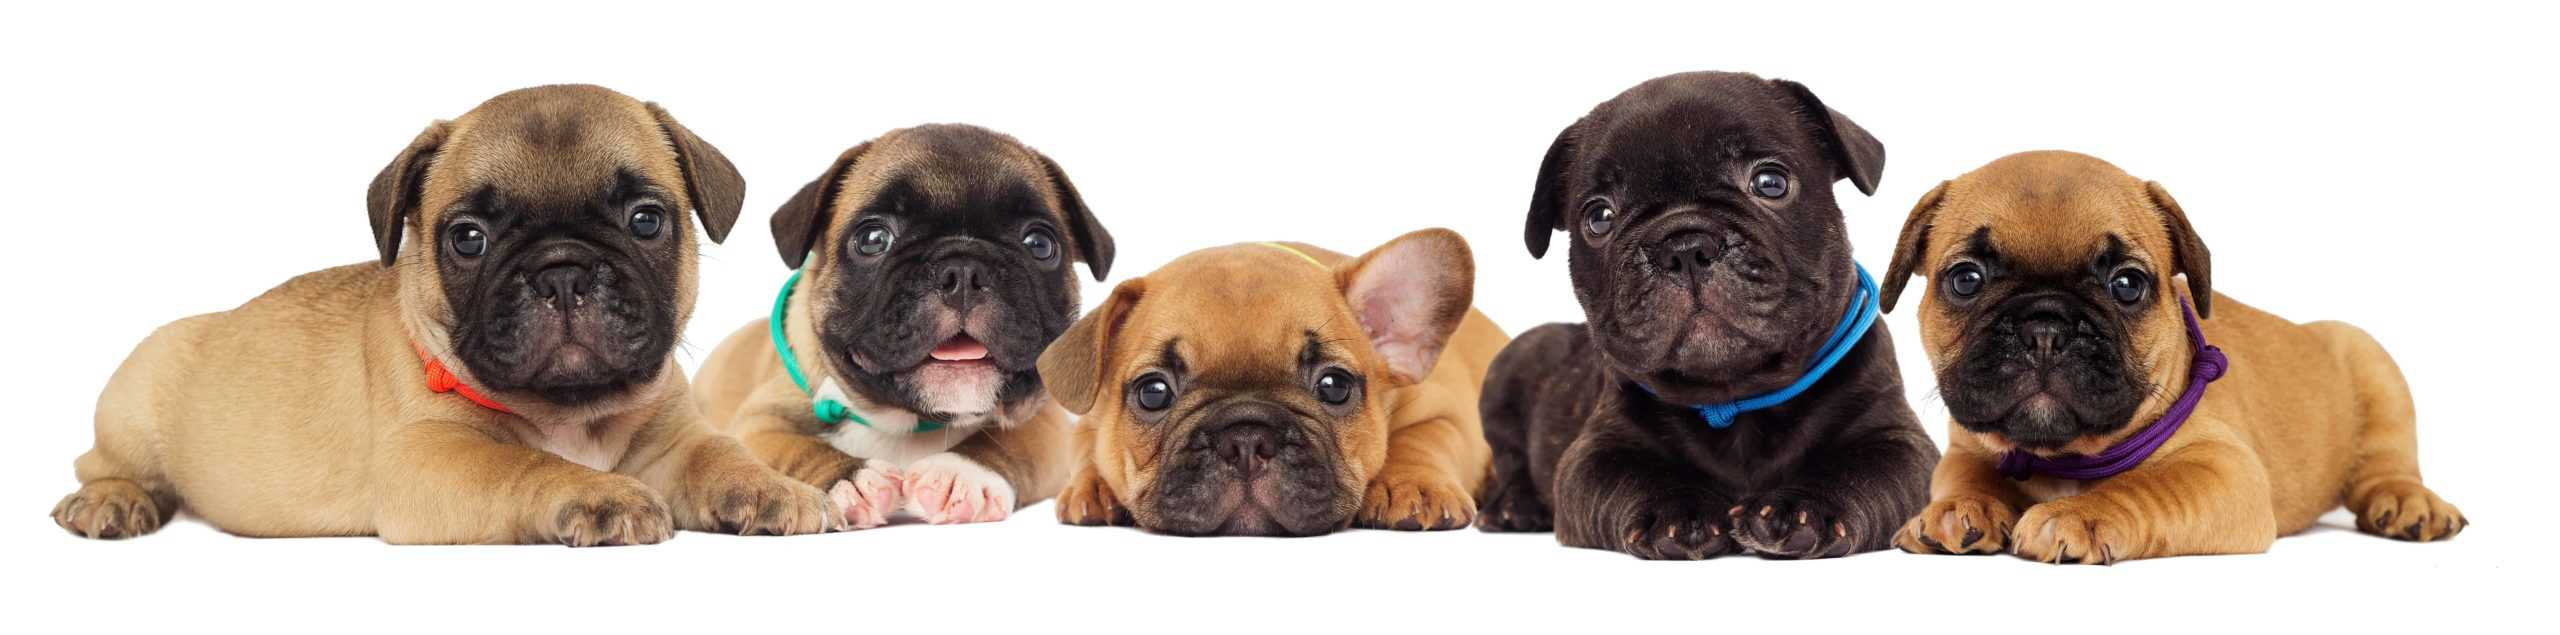 French bulldog puppies on a white background. French bulldogs are one of eight bulldog breeds.